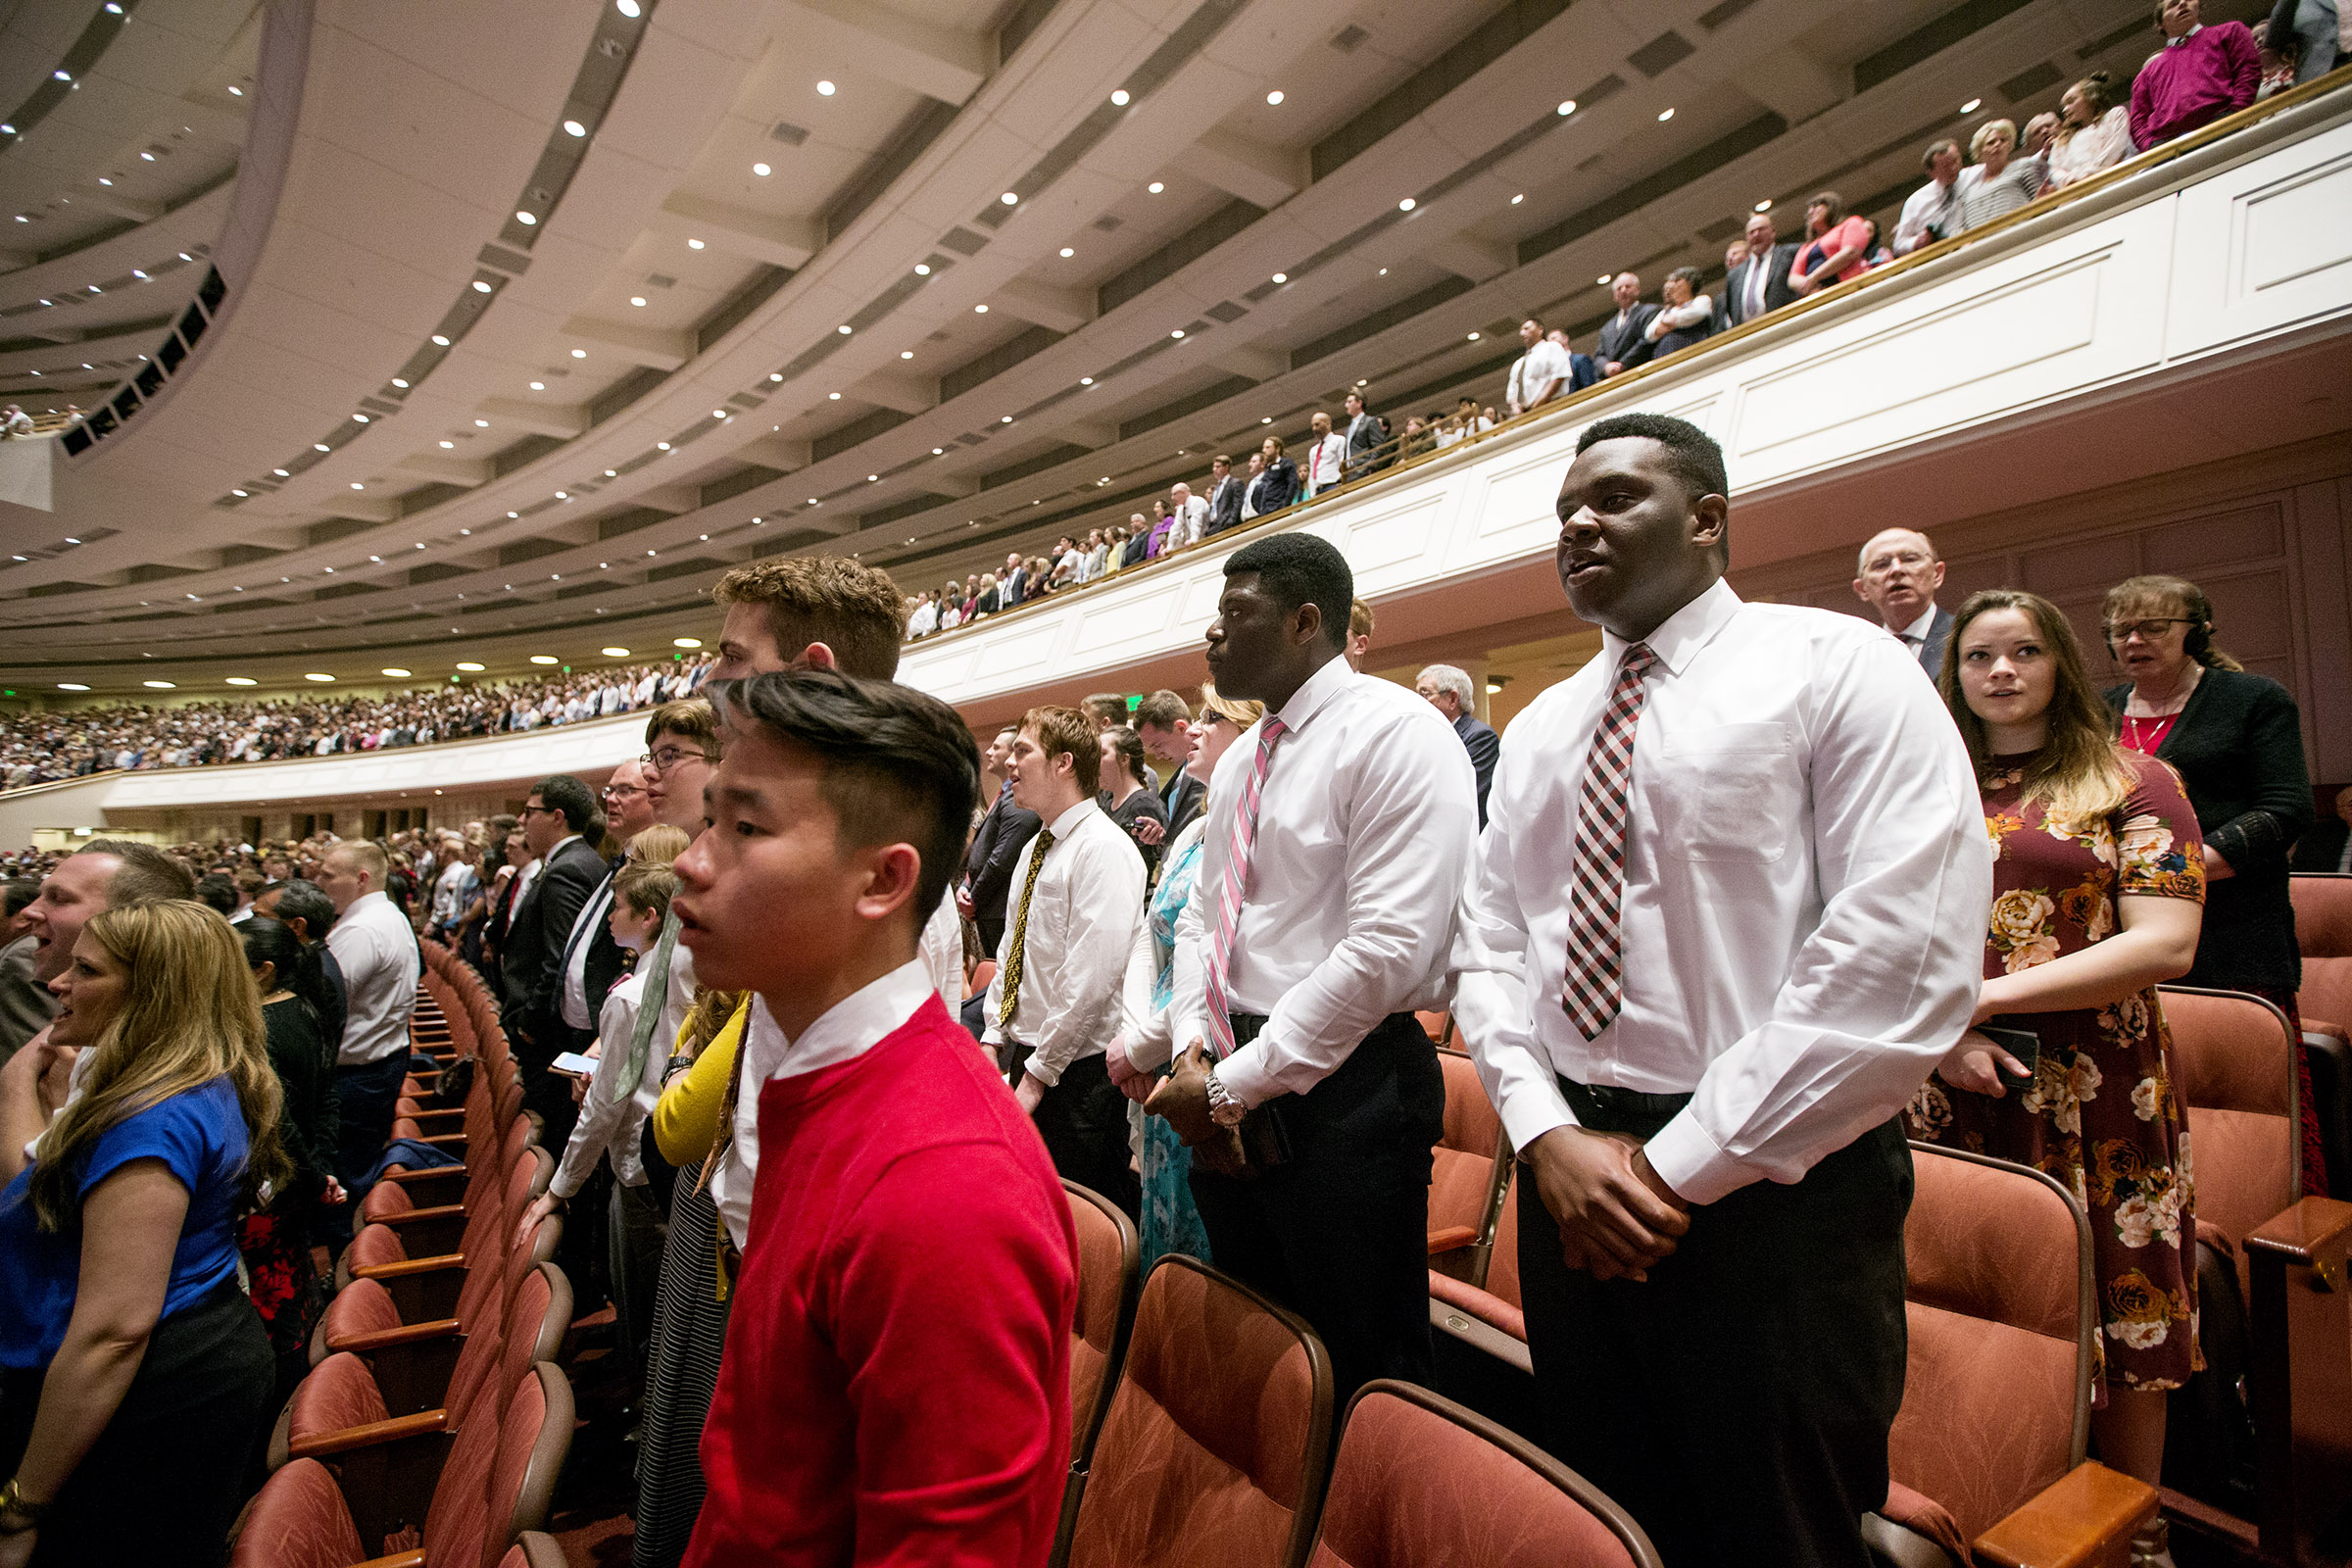 Conferencegoers stand and sing as they attend the Sunday afternoon session of the 188th Annual General Conference of The Church of Jesus Christ of Latter-day Saints in the Conference Center in Salt Lake City on Sunday, April 1, 2018.